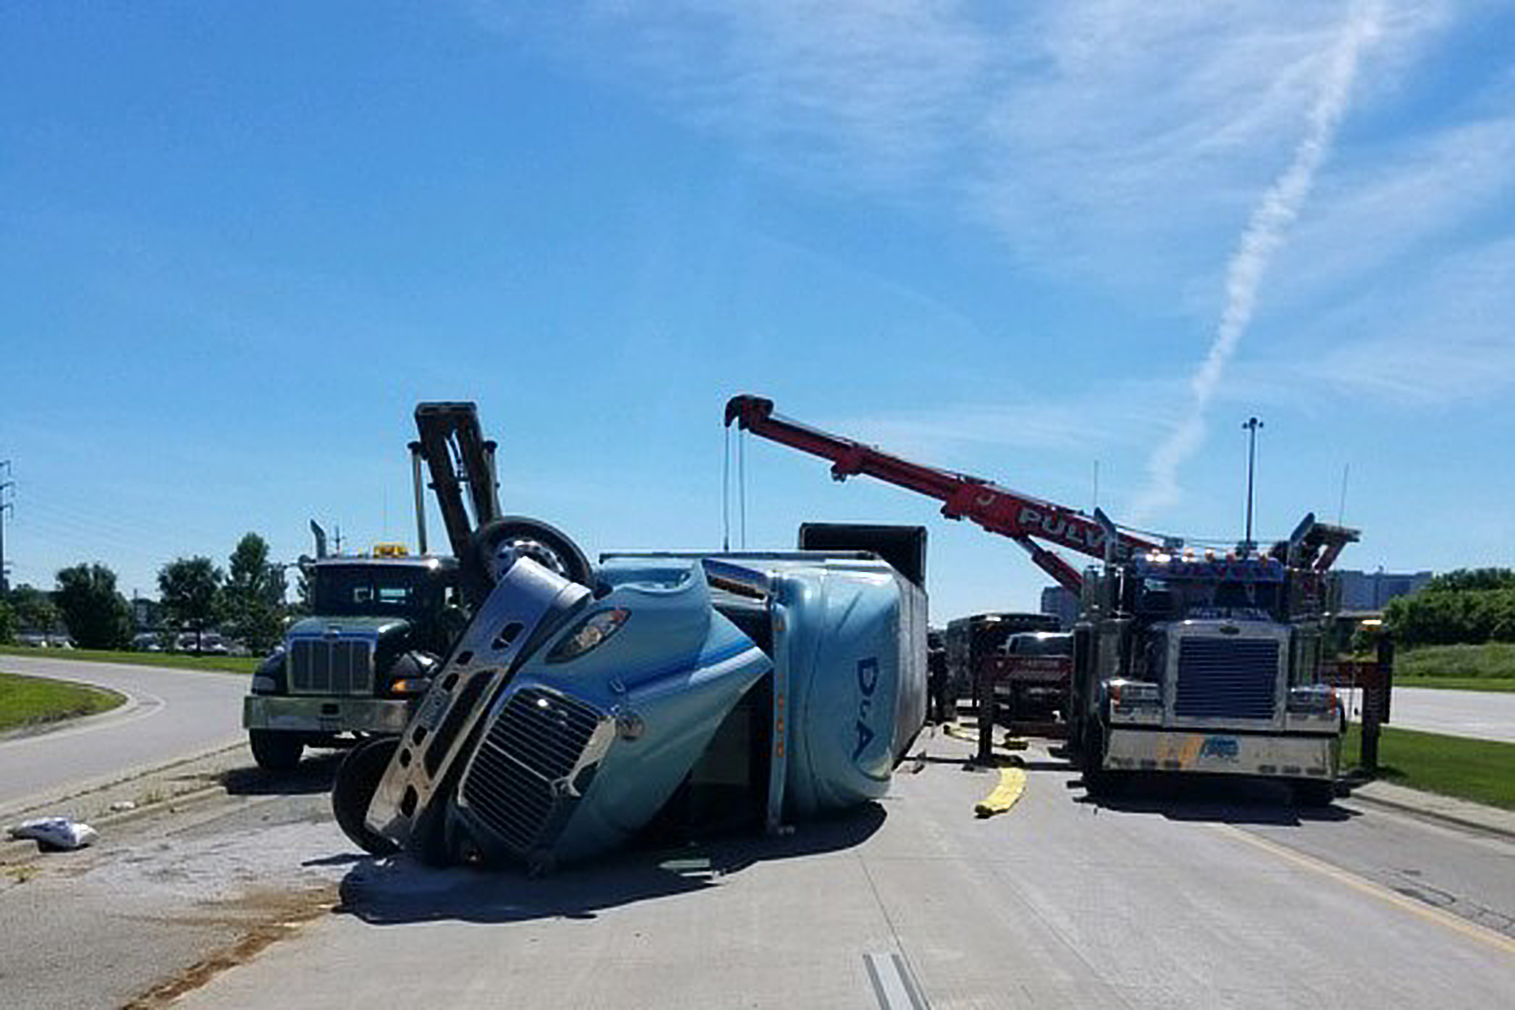 Traffic Mess Caused by Truck Crash at 52/14 Interchange   The Rock of Rochester